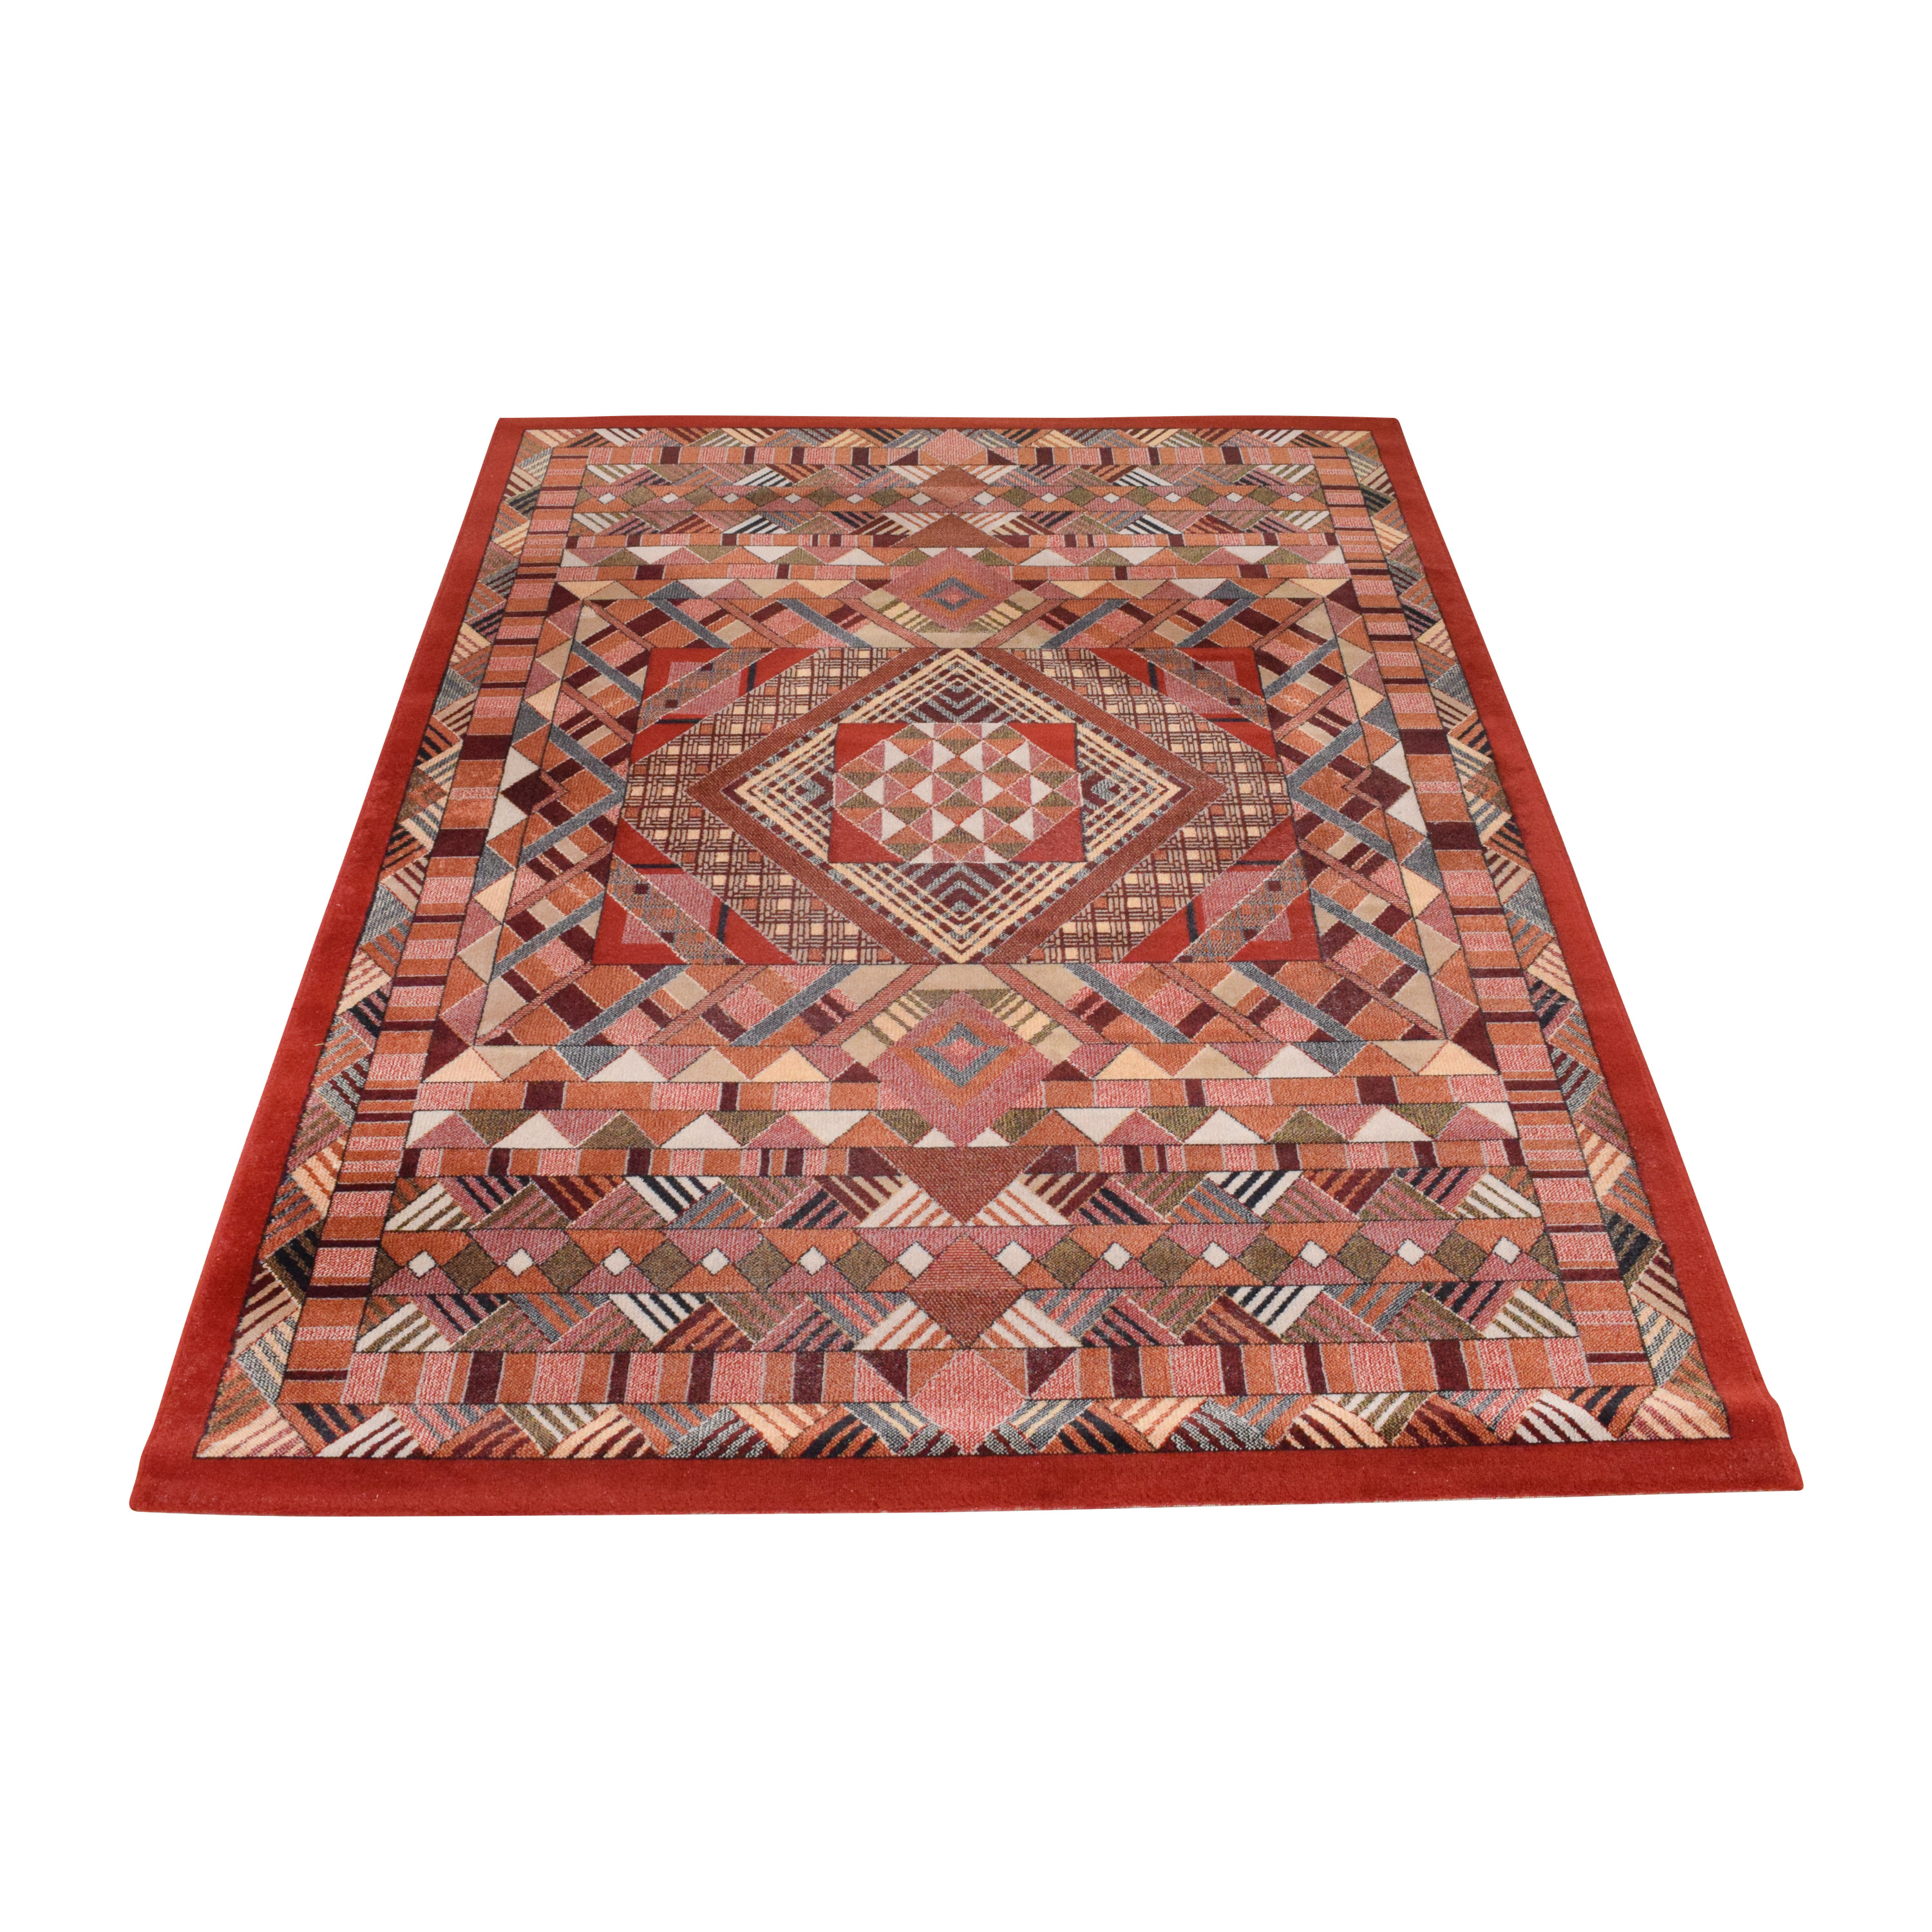 Patterned Area Rug ma